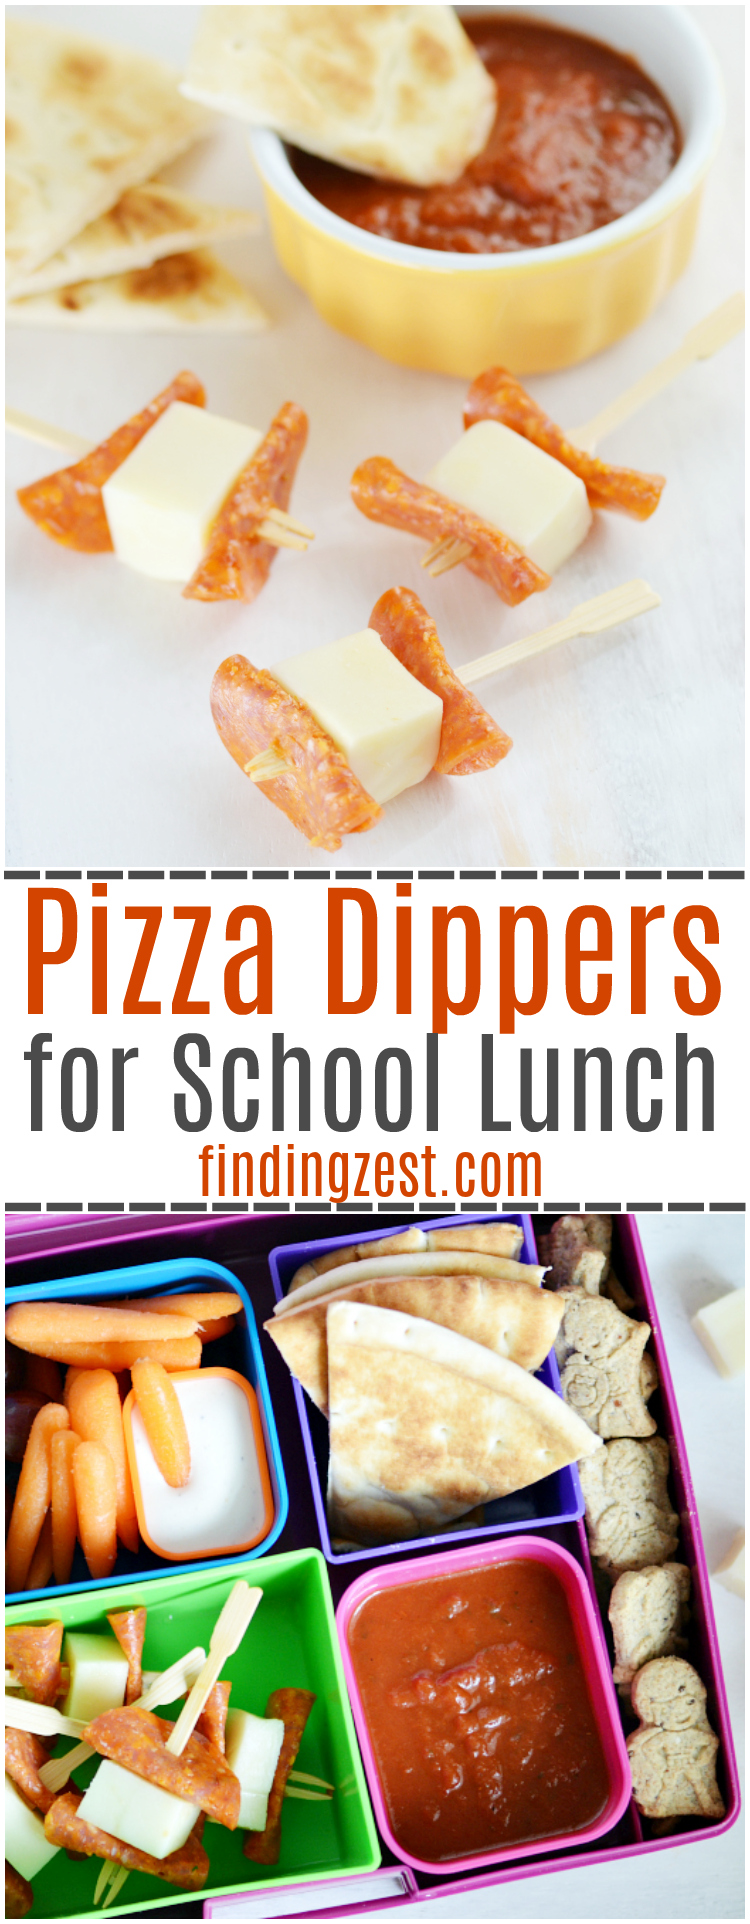 Looking for new kid-friendly lunch ideas? Try these pizza dippers for back to school, a quick no-bake option that offers the pizza taste you love. Also works great as a game day appetizer or after school snack.